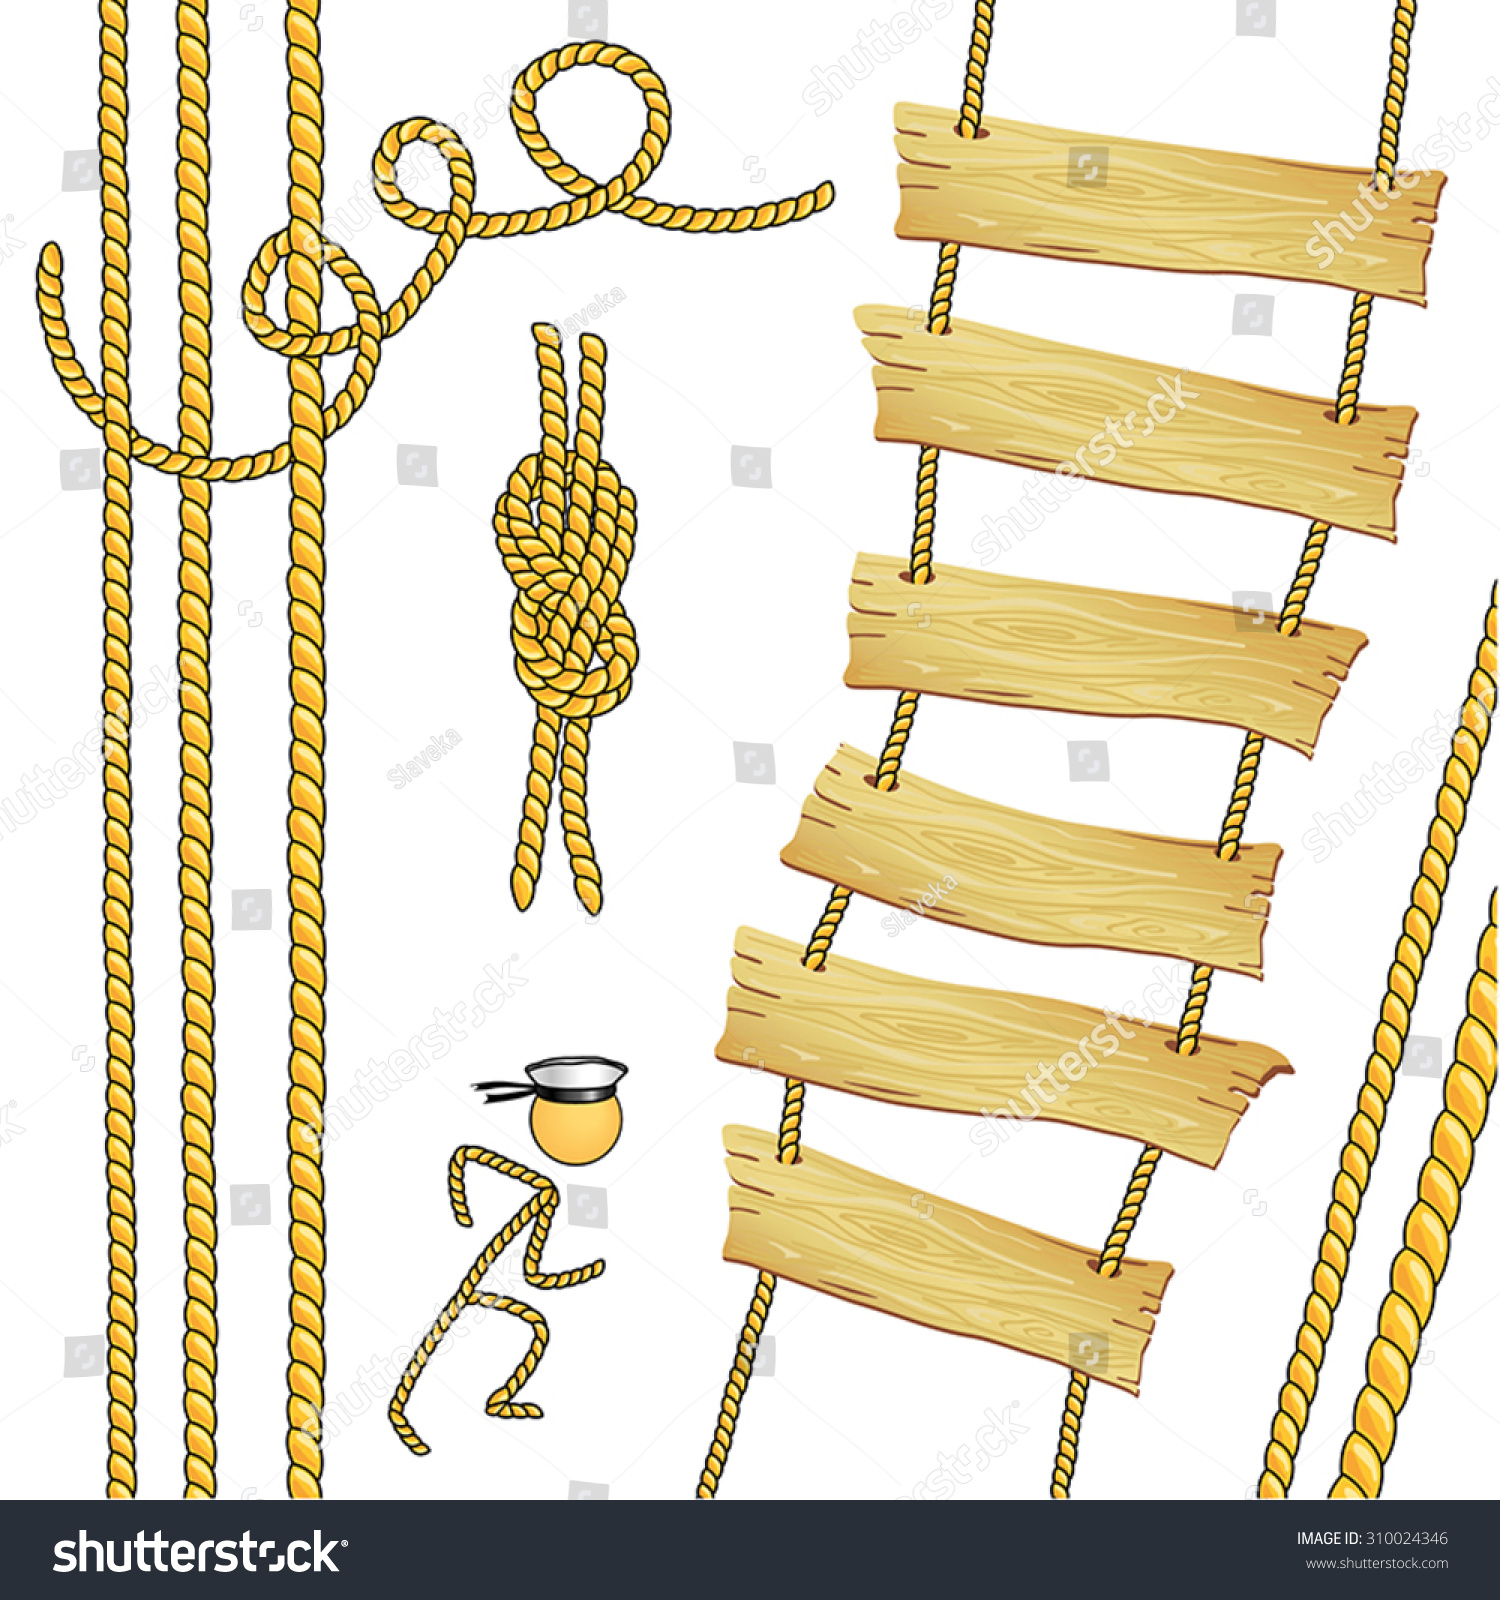 Rope Ladder Rope Reef Knot Stock Vector 310024346 - Shutterstock for Rope Ladder Knot  166kxo